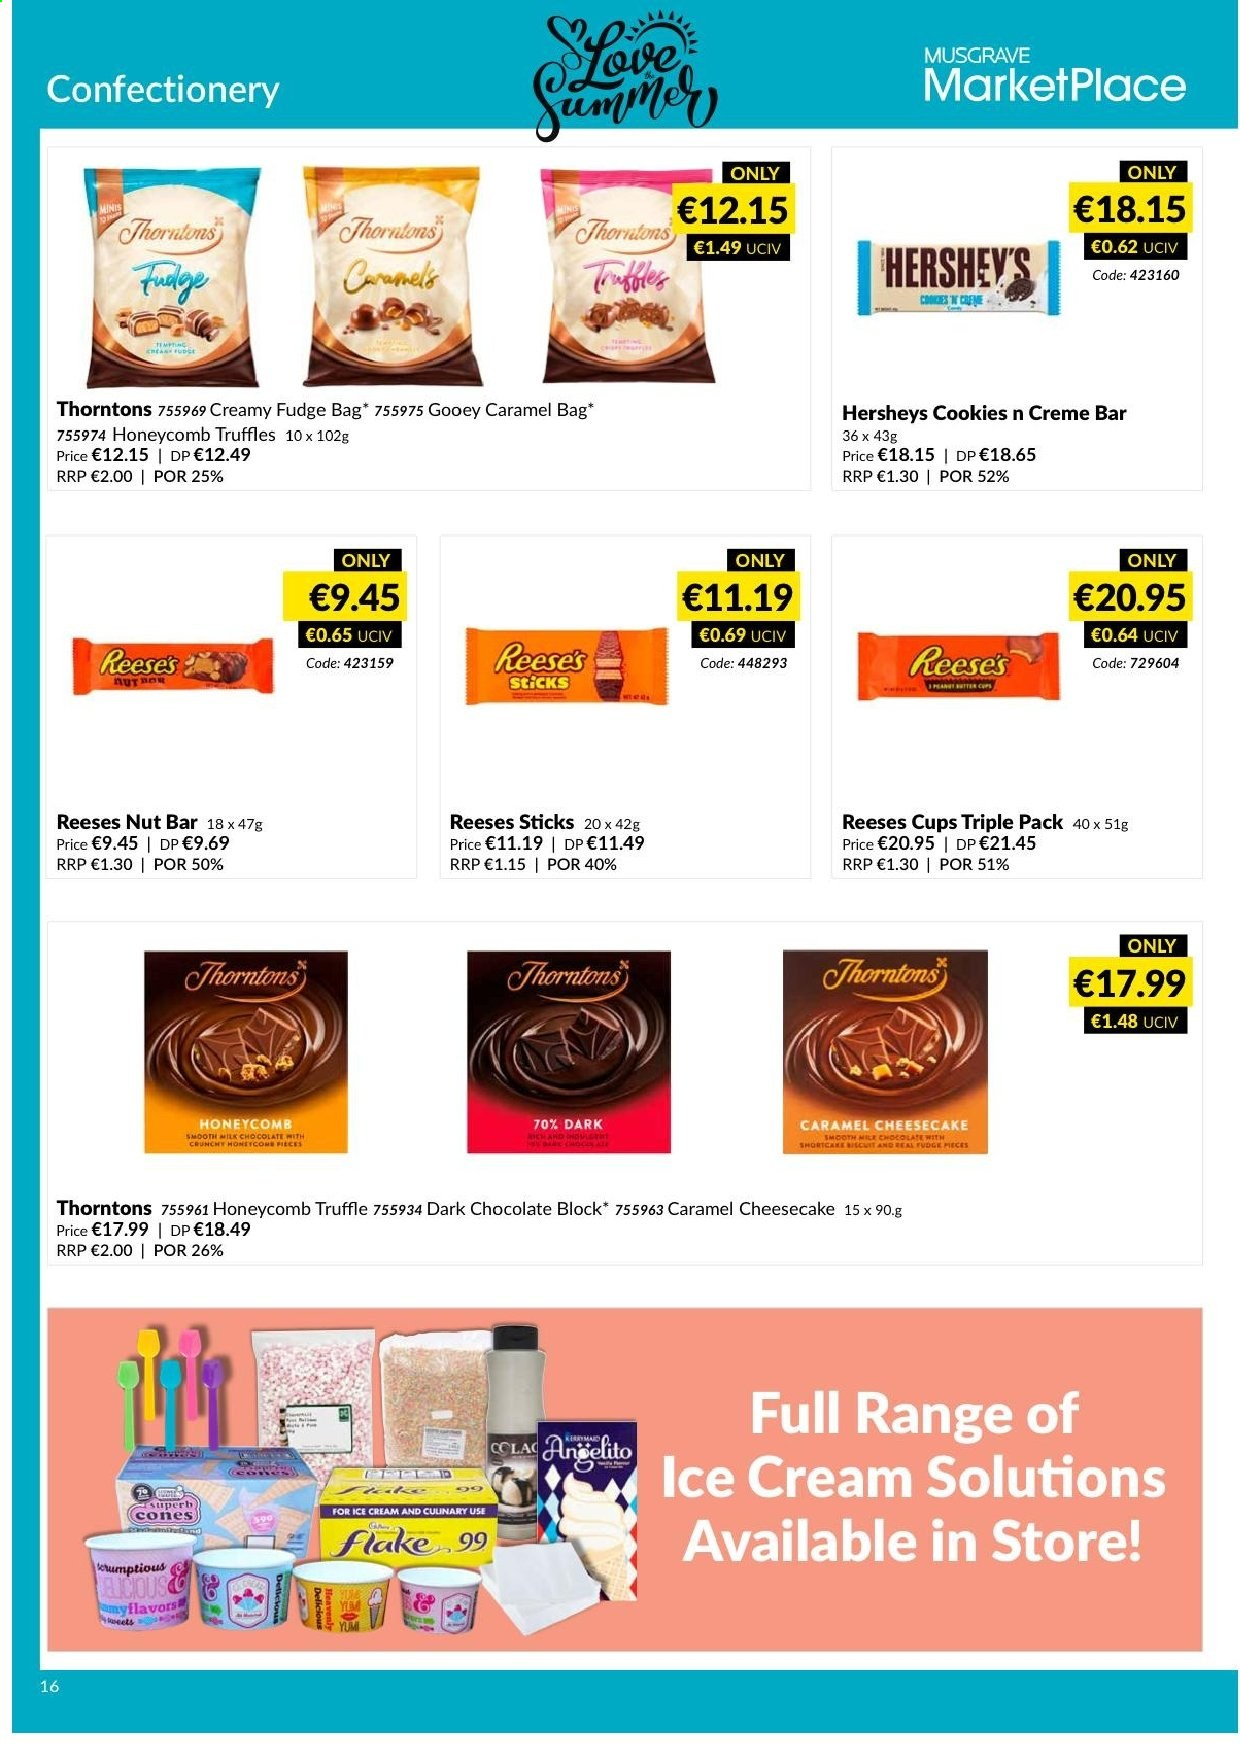 MUSGRAVE Market Place offer  - 9.6.2019 - 6.7.2019 - Sales products - cheesecake, ice cream, bittersweet chocolate, cookies, Fudge, chocolate, truffles, nut bar, caramel. Page 22.